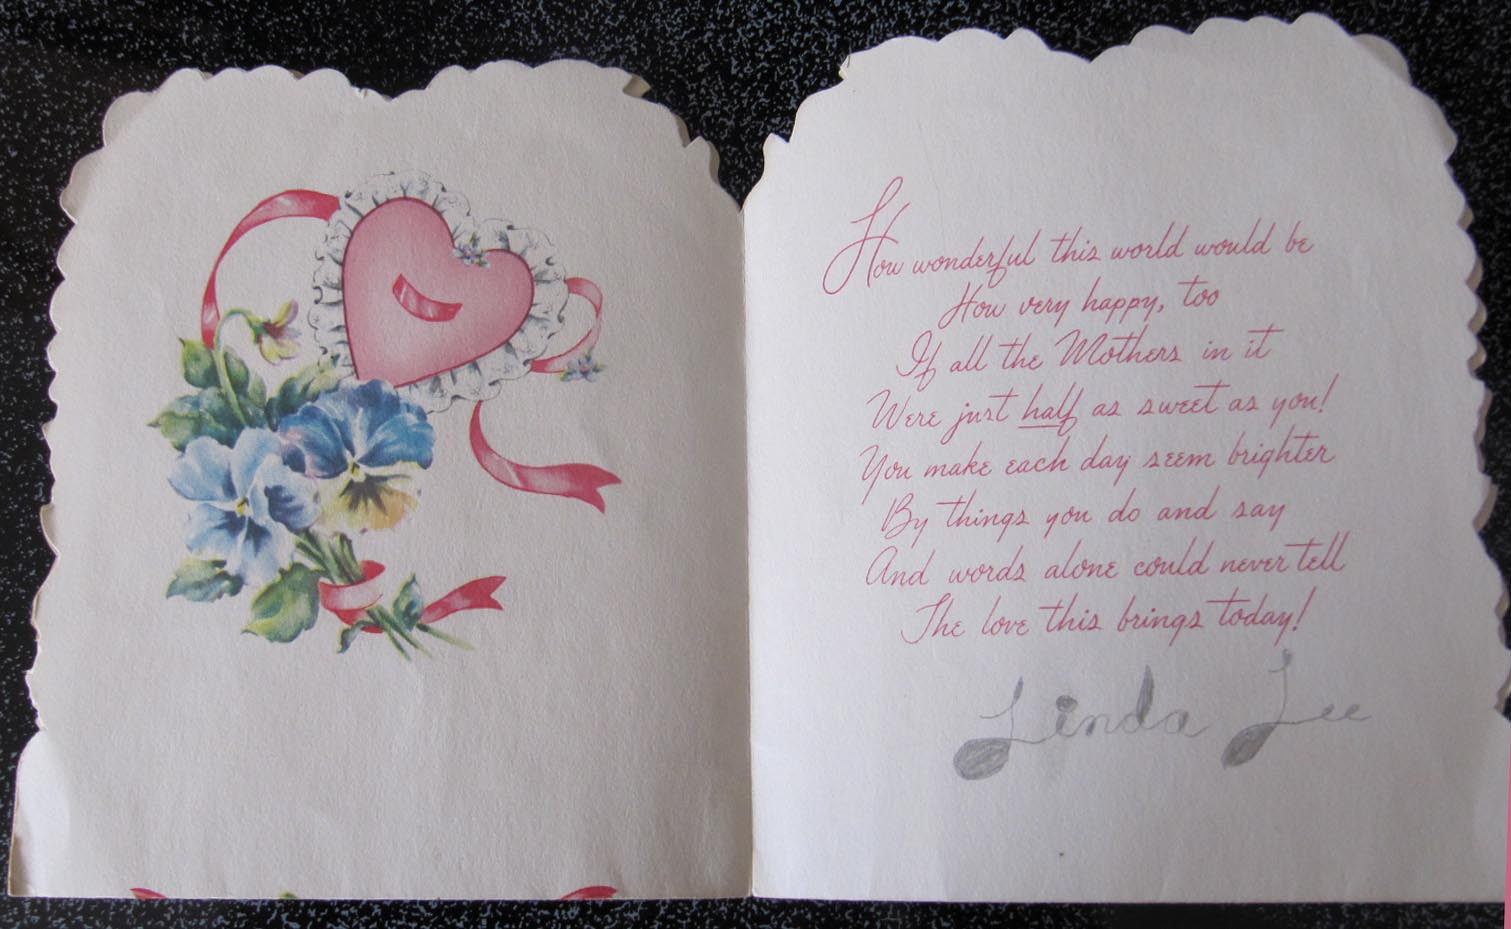 Letters from Lin: Happy Valentine